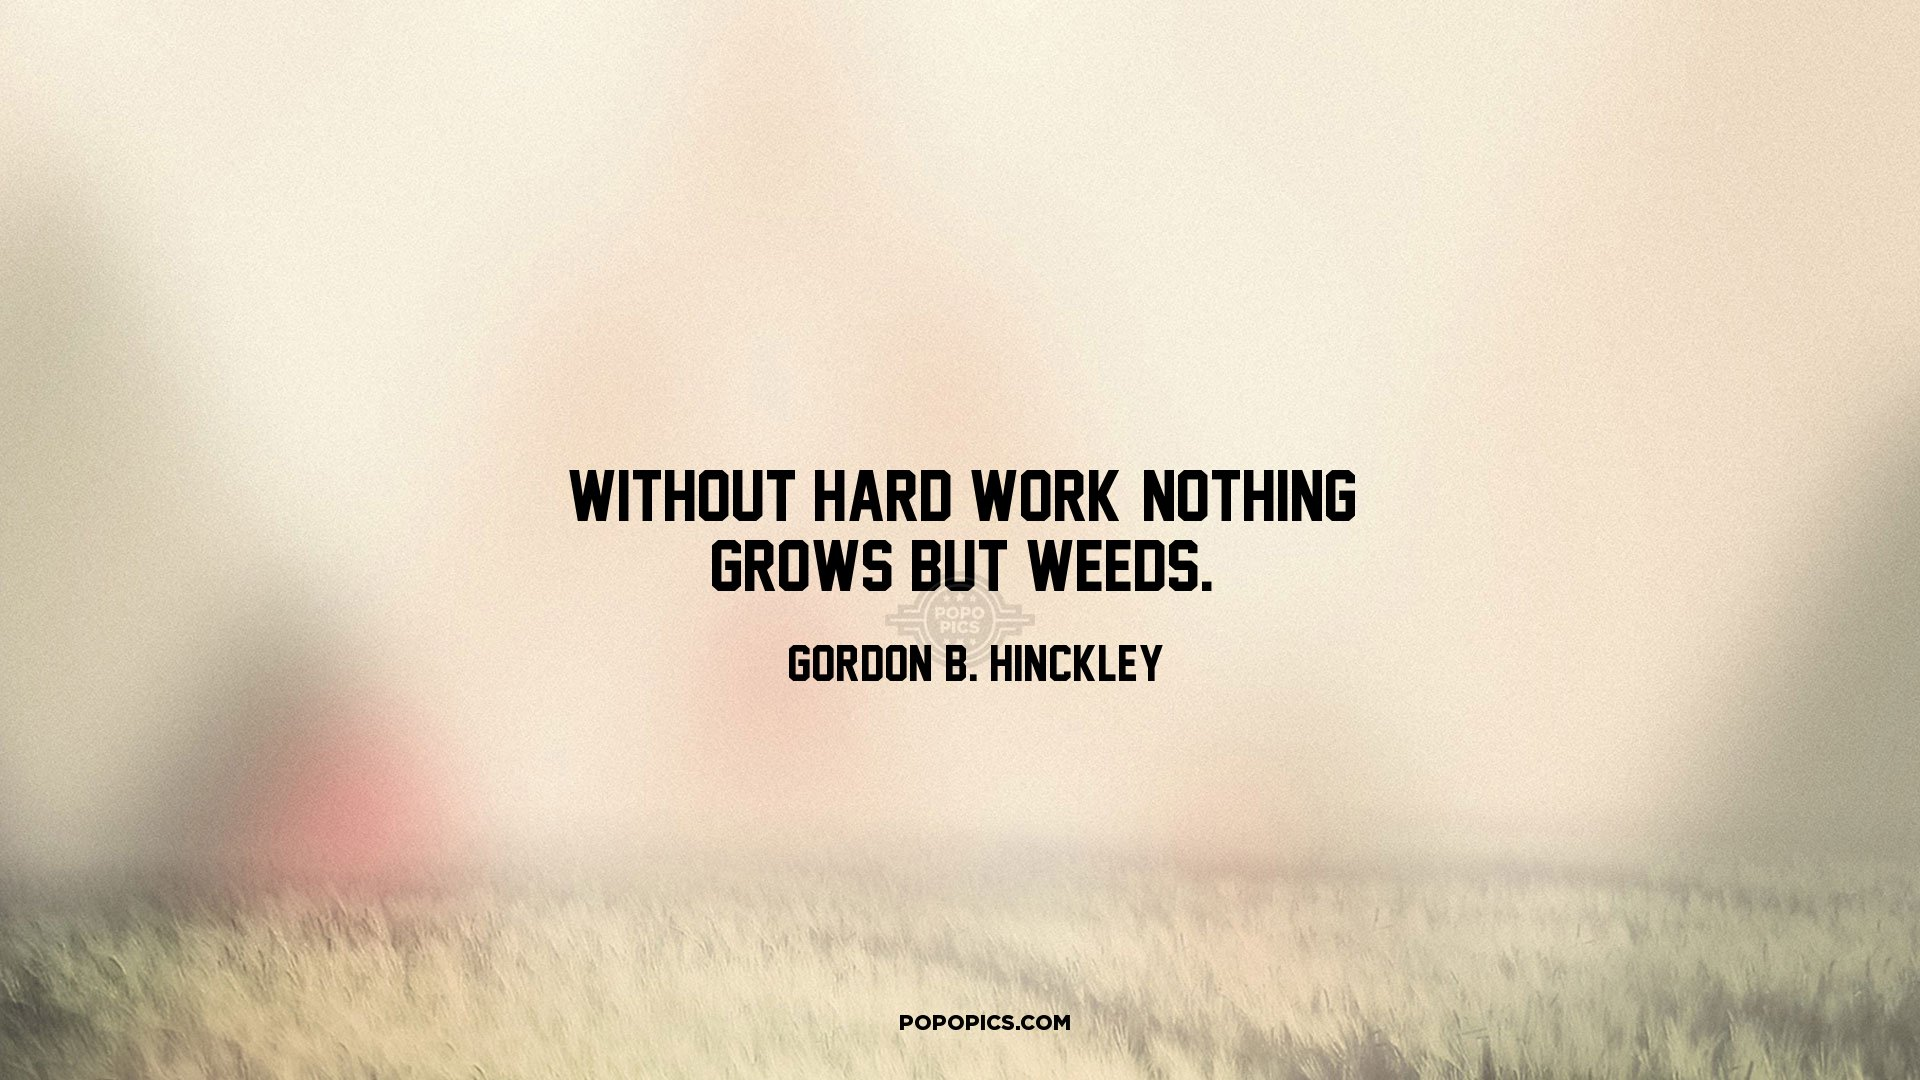 Gordon B Hinckley Quotes Without Hard Work Nothing Grows But Weeds Quotesgordon B